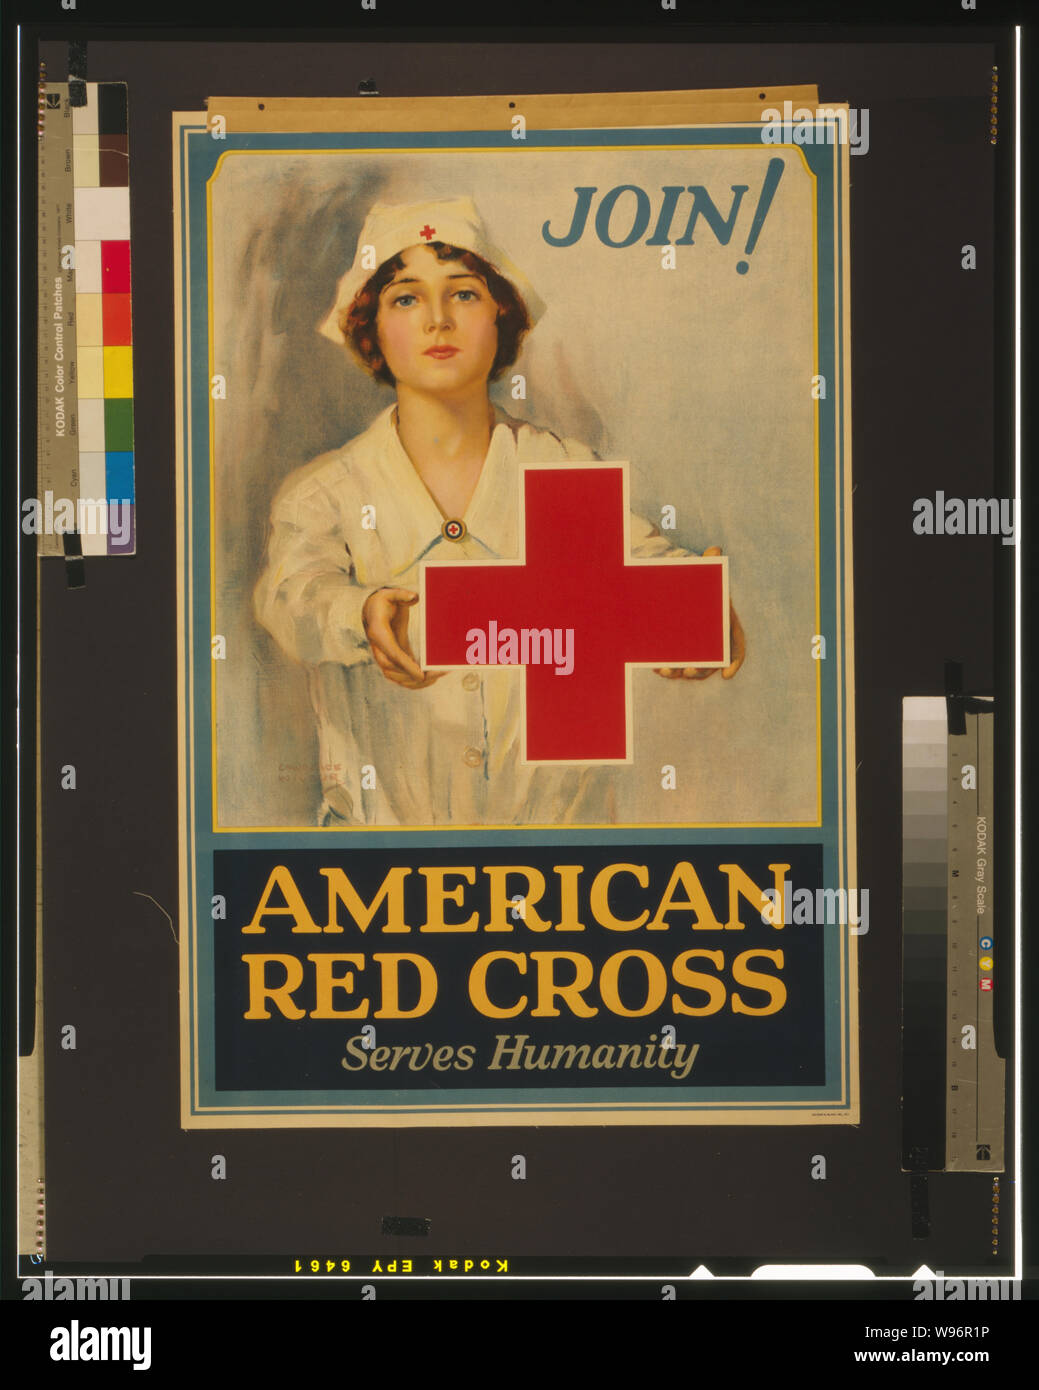 American Red Cross serves humanity Abstract: American Red